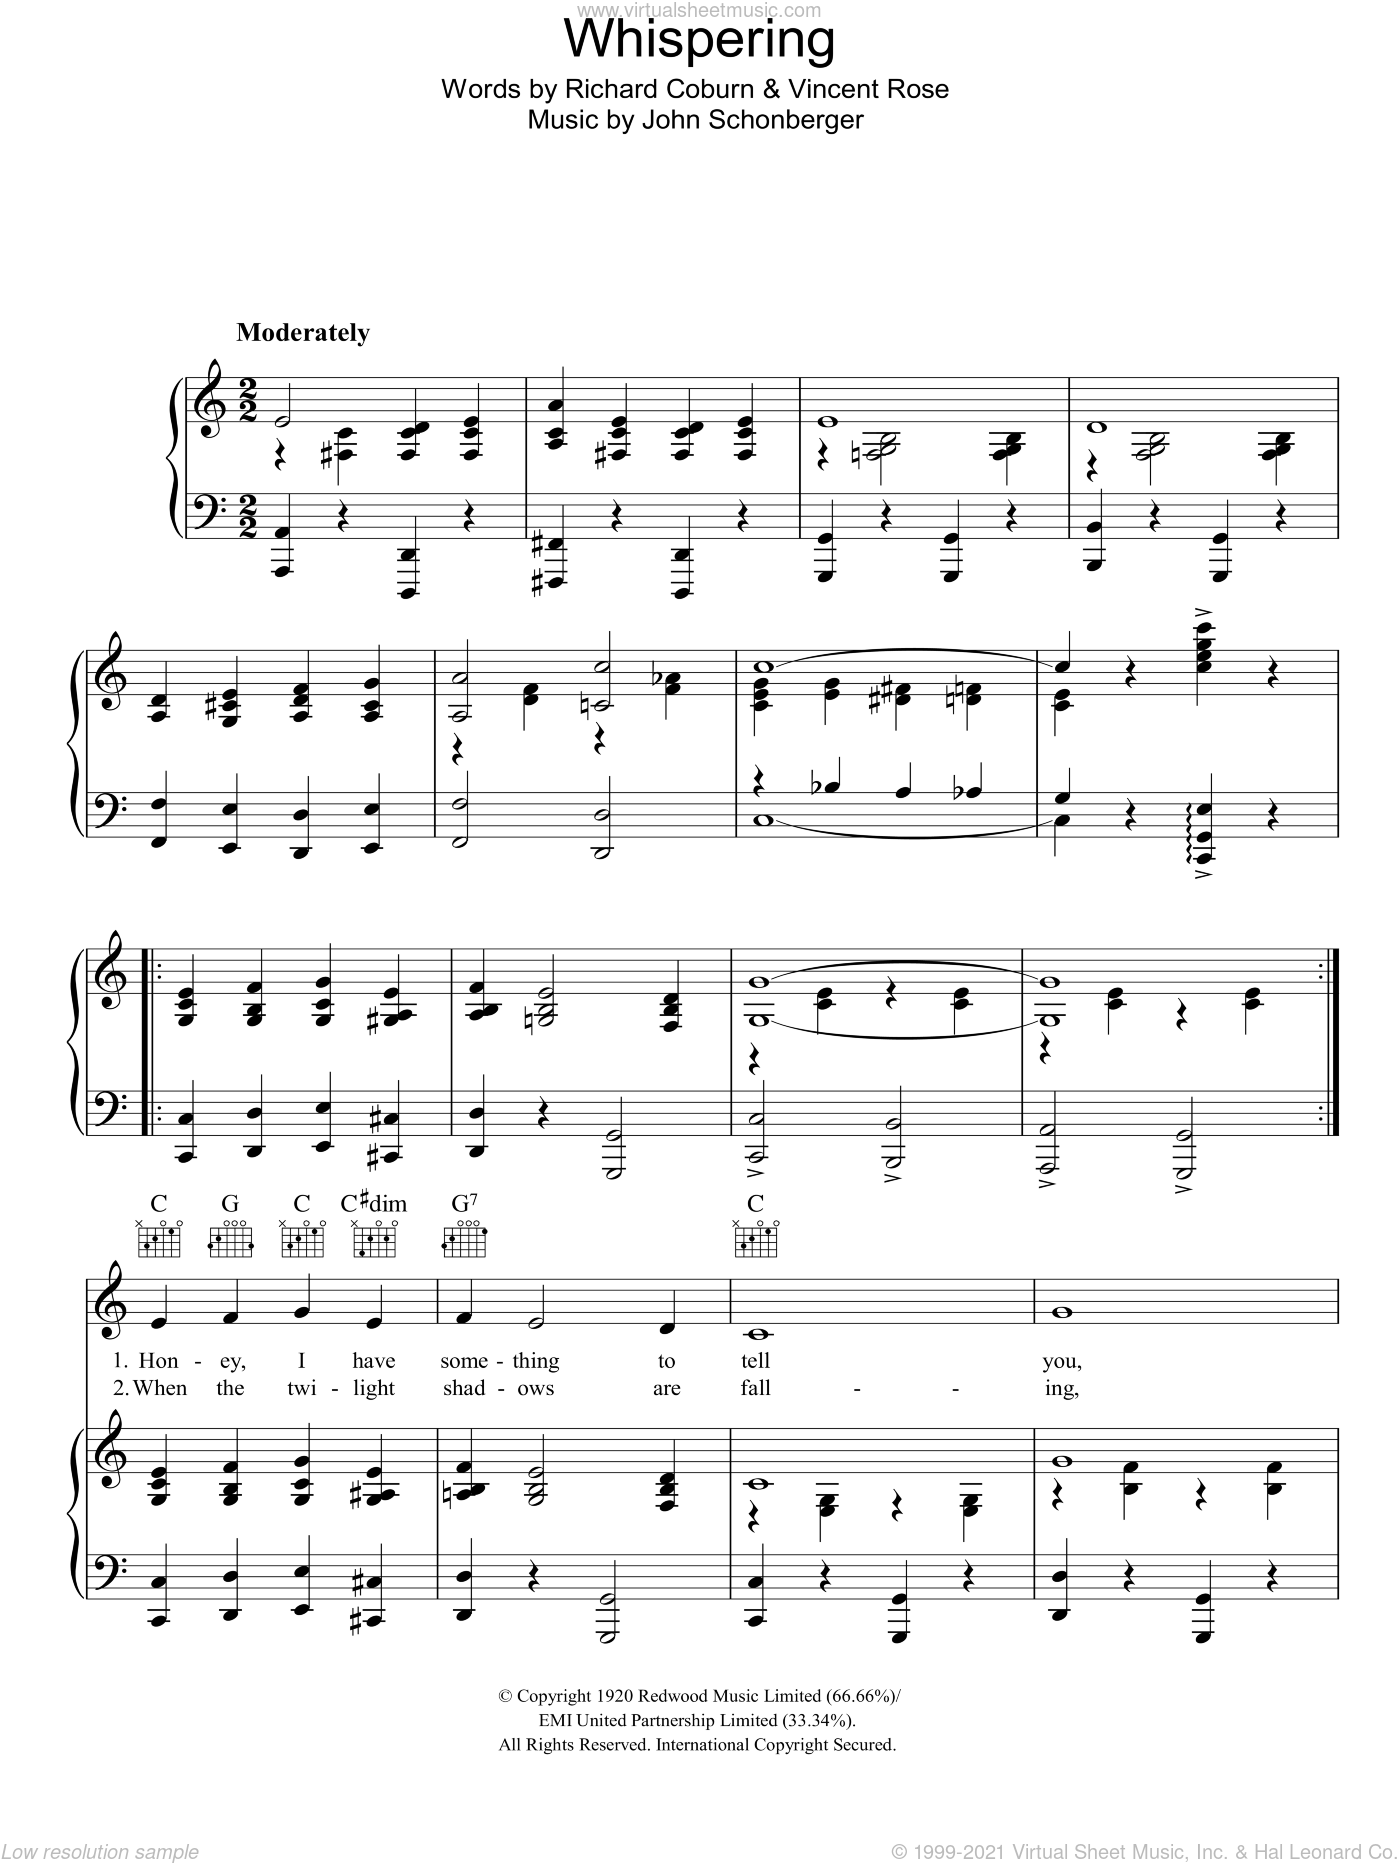 Whispering sheet music for voice, piano or guitar by Bing Crosby, John Schonberger, Richard Coburn and Vincent Rose, intermediate. Score Image Preview.